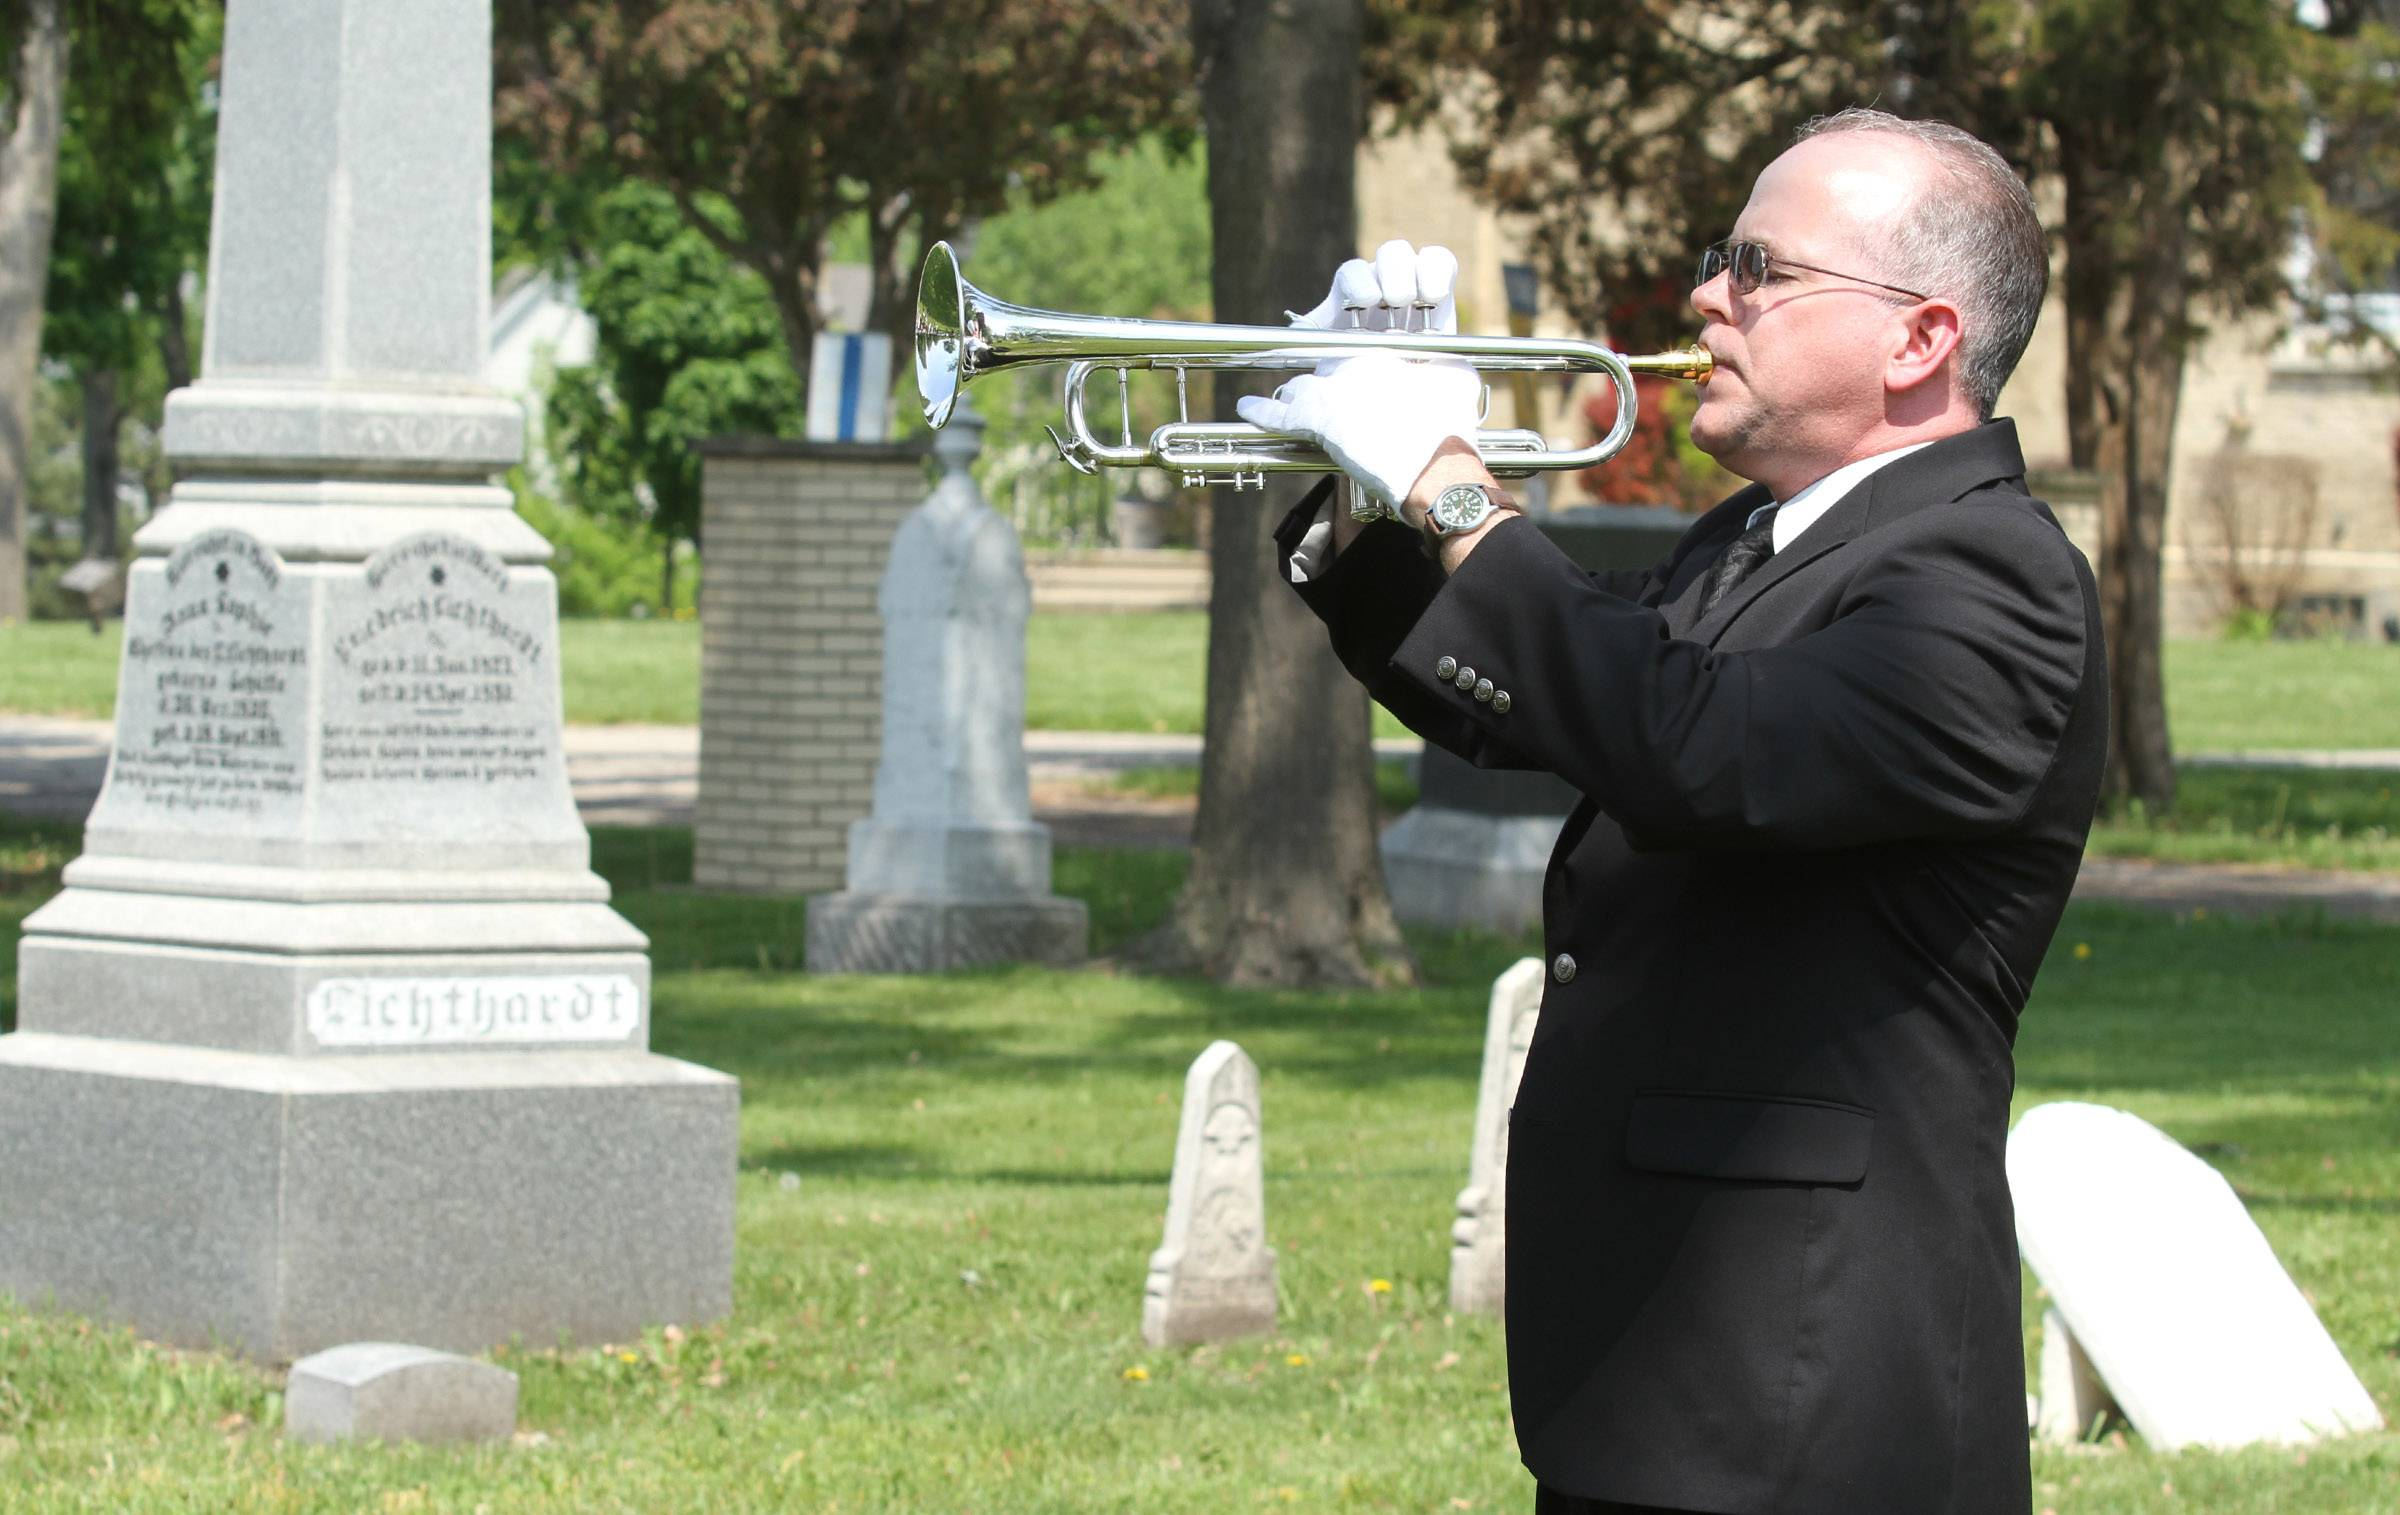 Steve Foster of Hoffman Estates, with Spring Valley Concert Band, plays during a Memorial Day ceremony in St. Peter Lutheran Cemetery in Schaumburg.